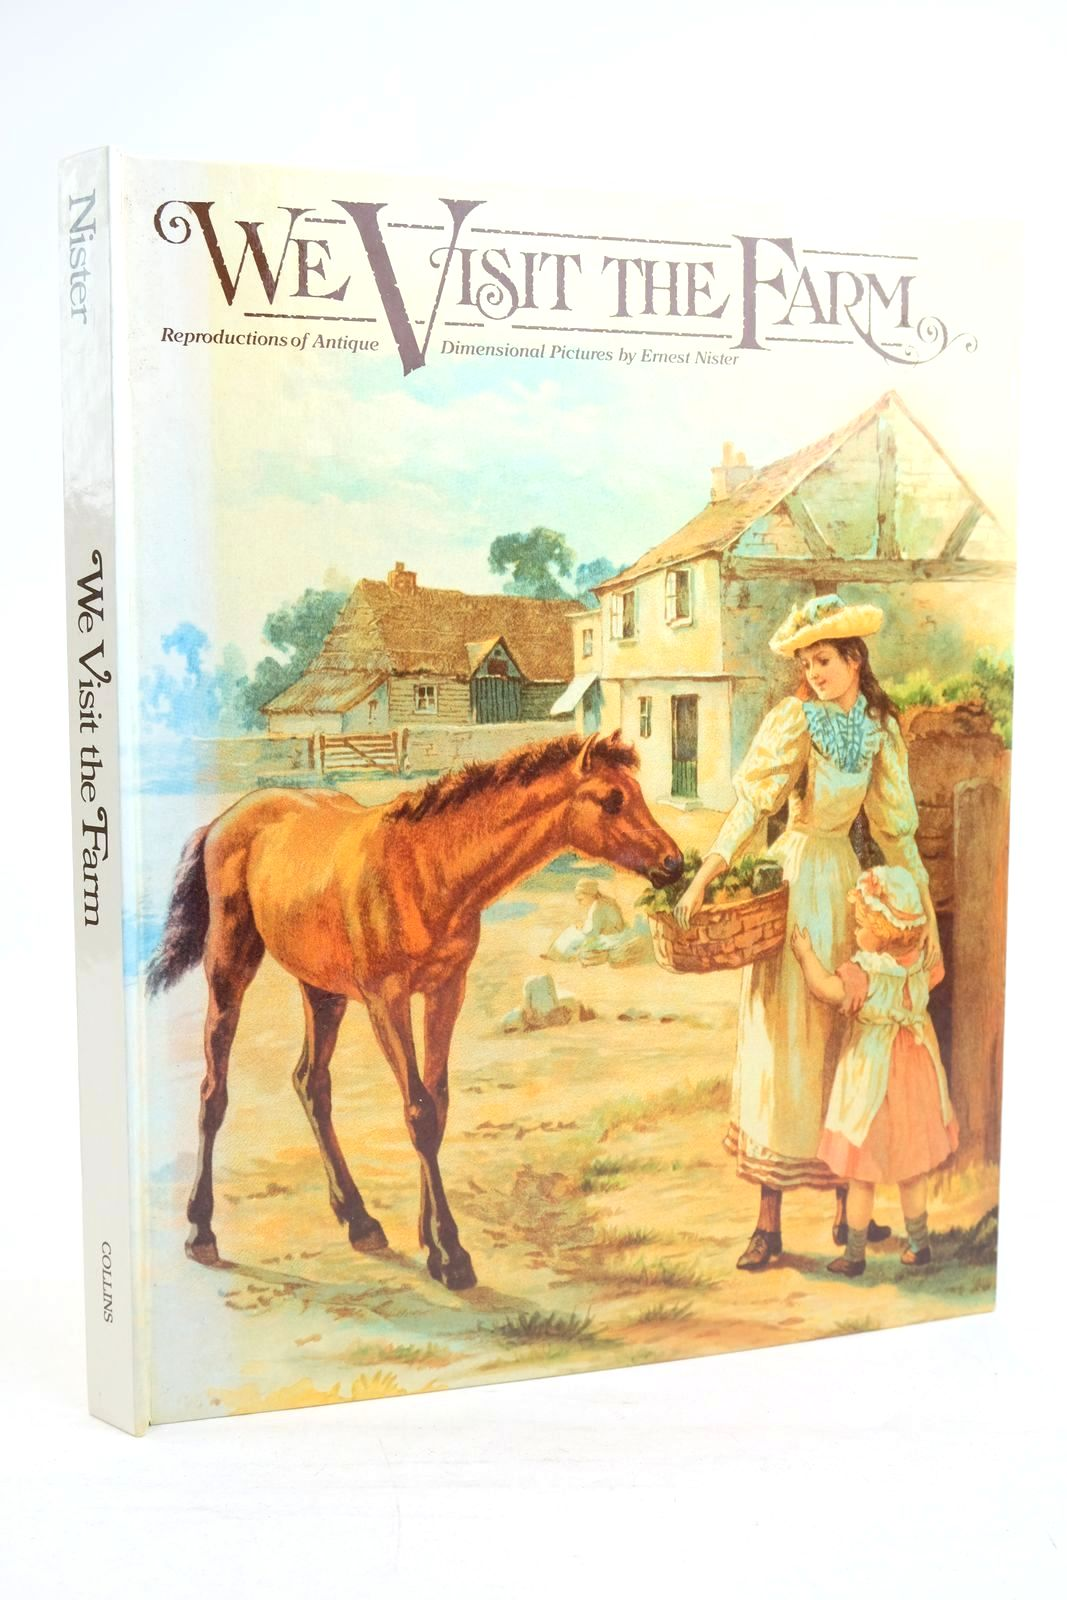 Photo of WE VISIT THE FARM published by Collins (STOCK CODE: 1319981)  for sale by Stella & Rose's Books